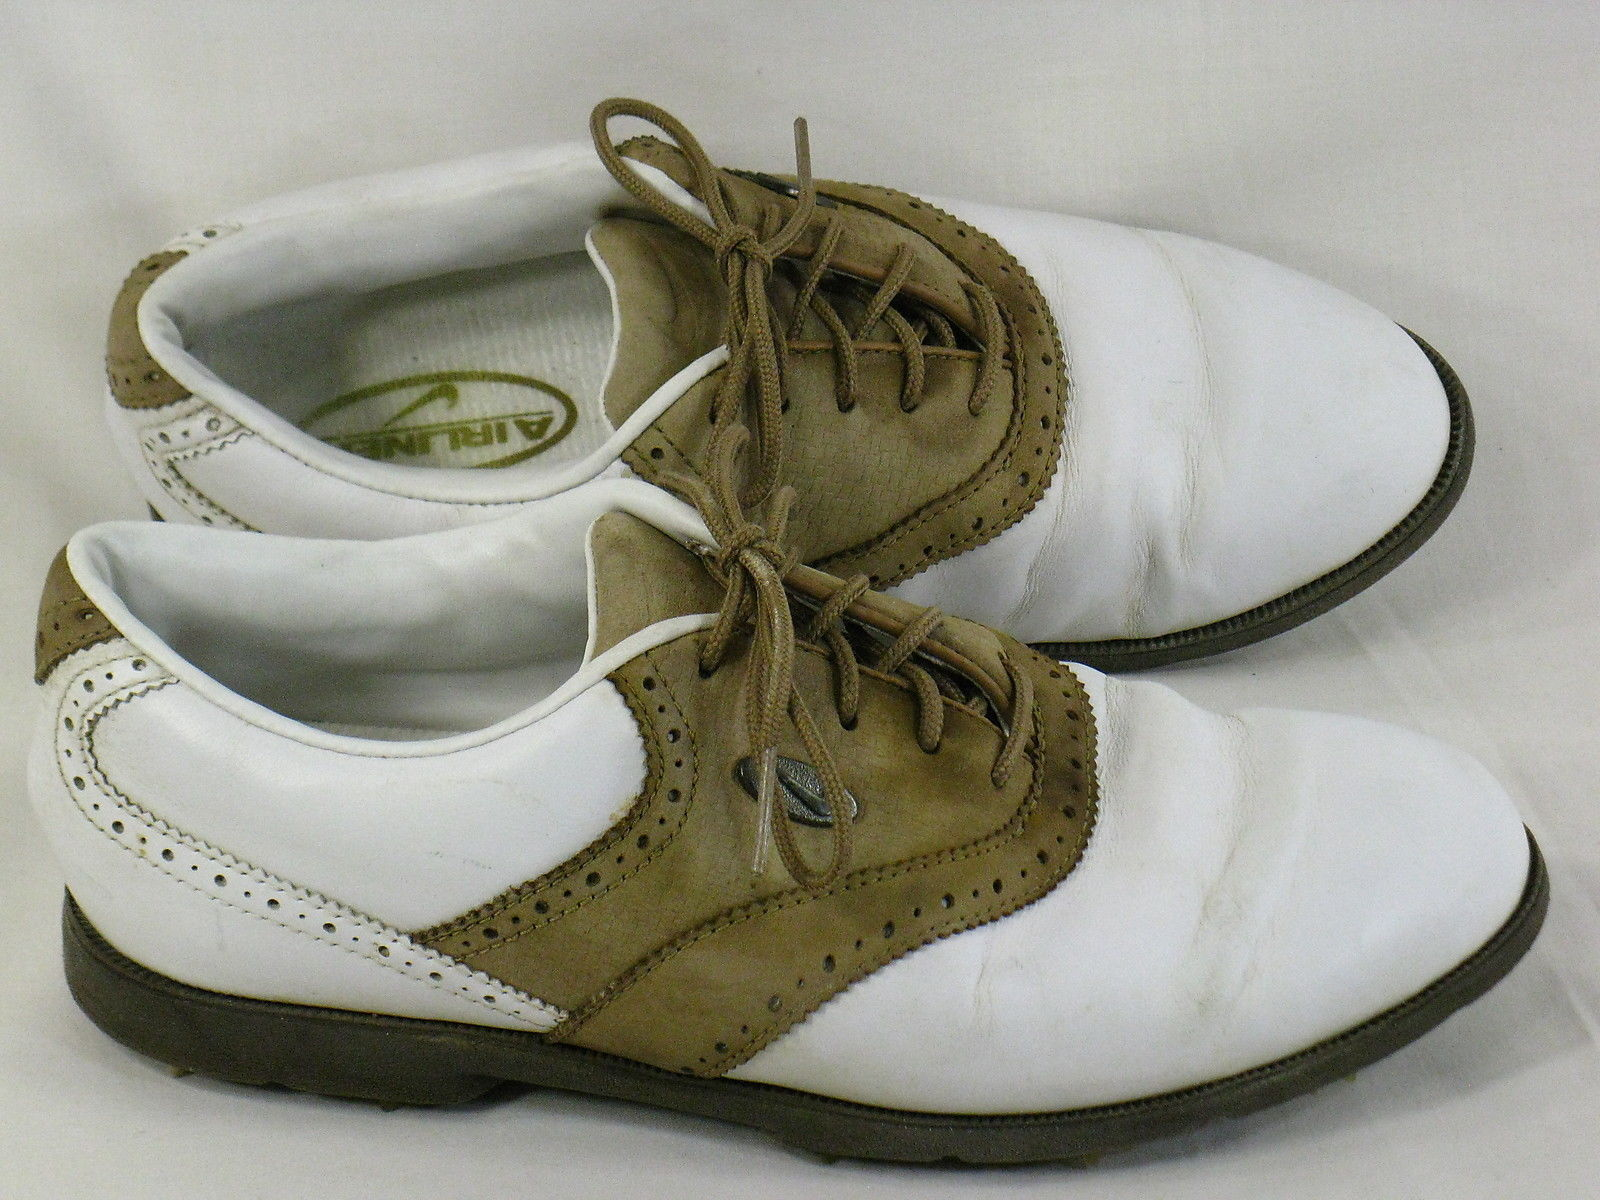 Nike Airliner Shoes